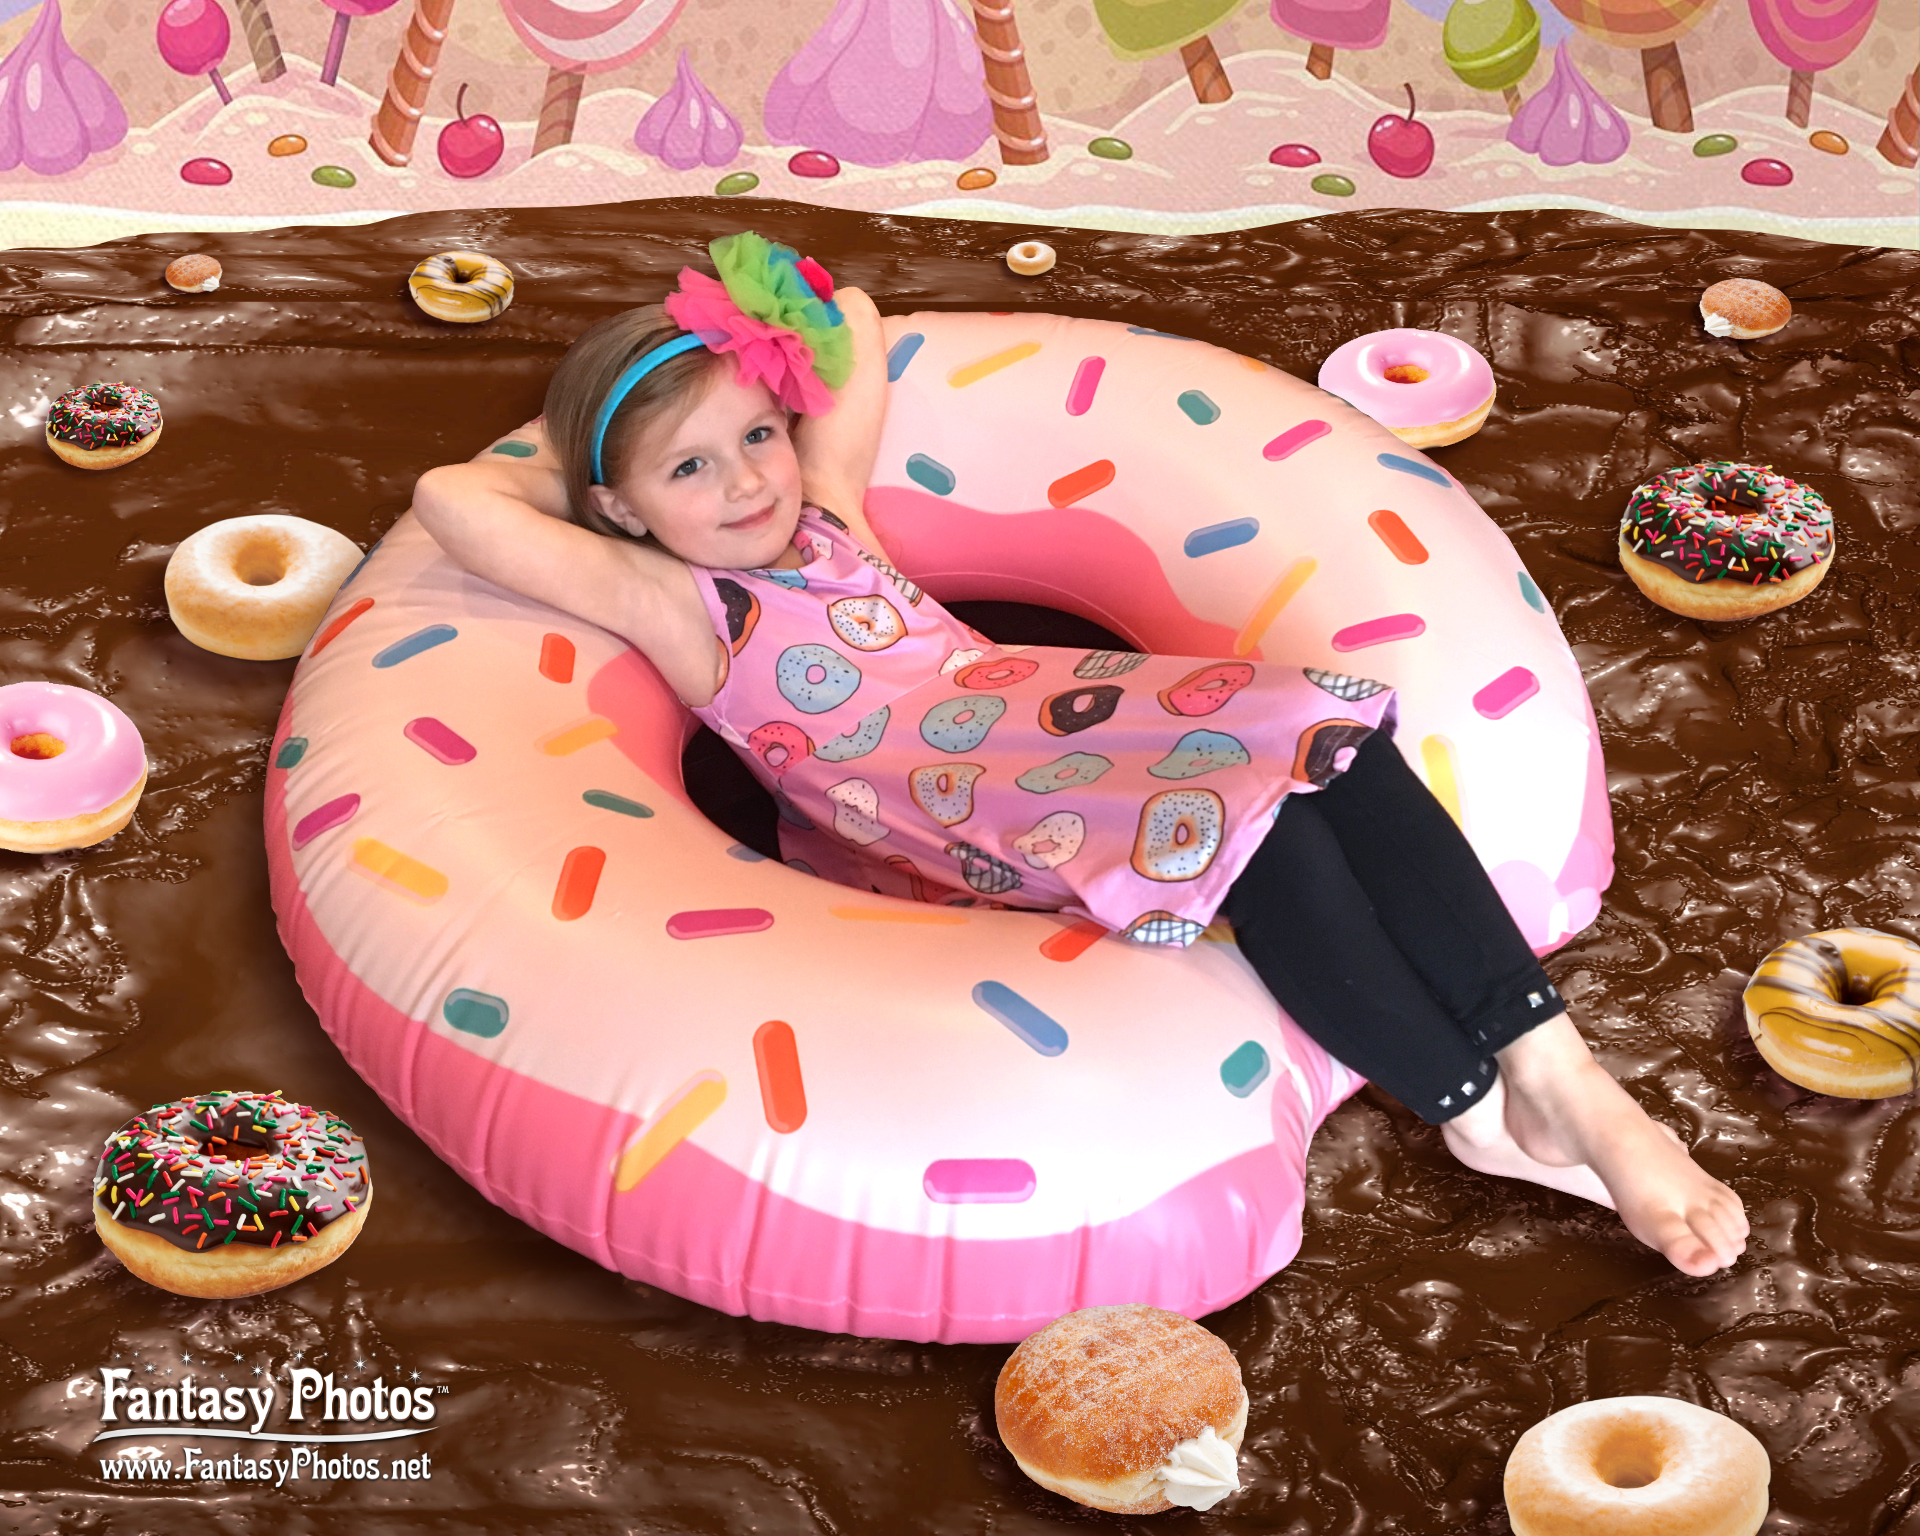 Fantasy Photos-5th Birthday-Donut Float-